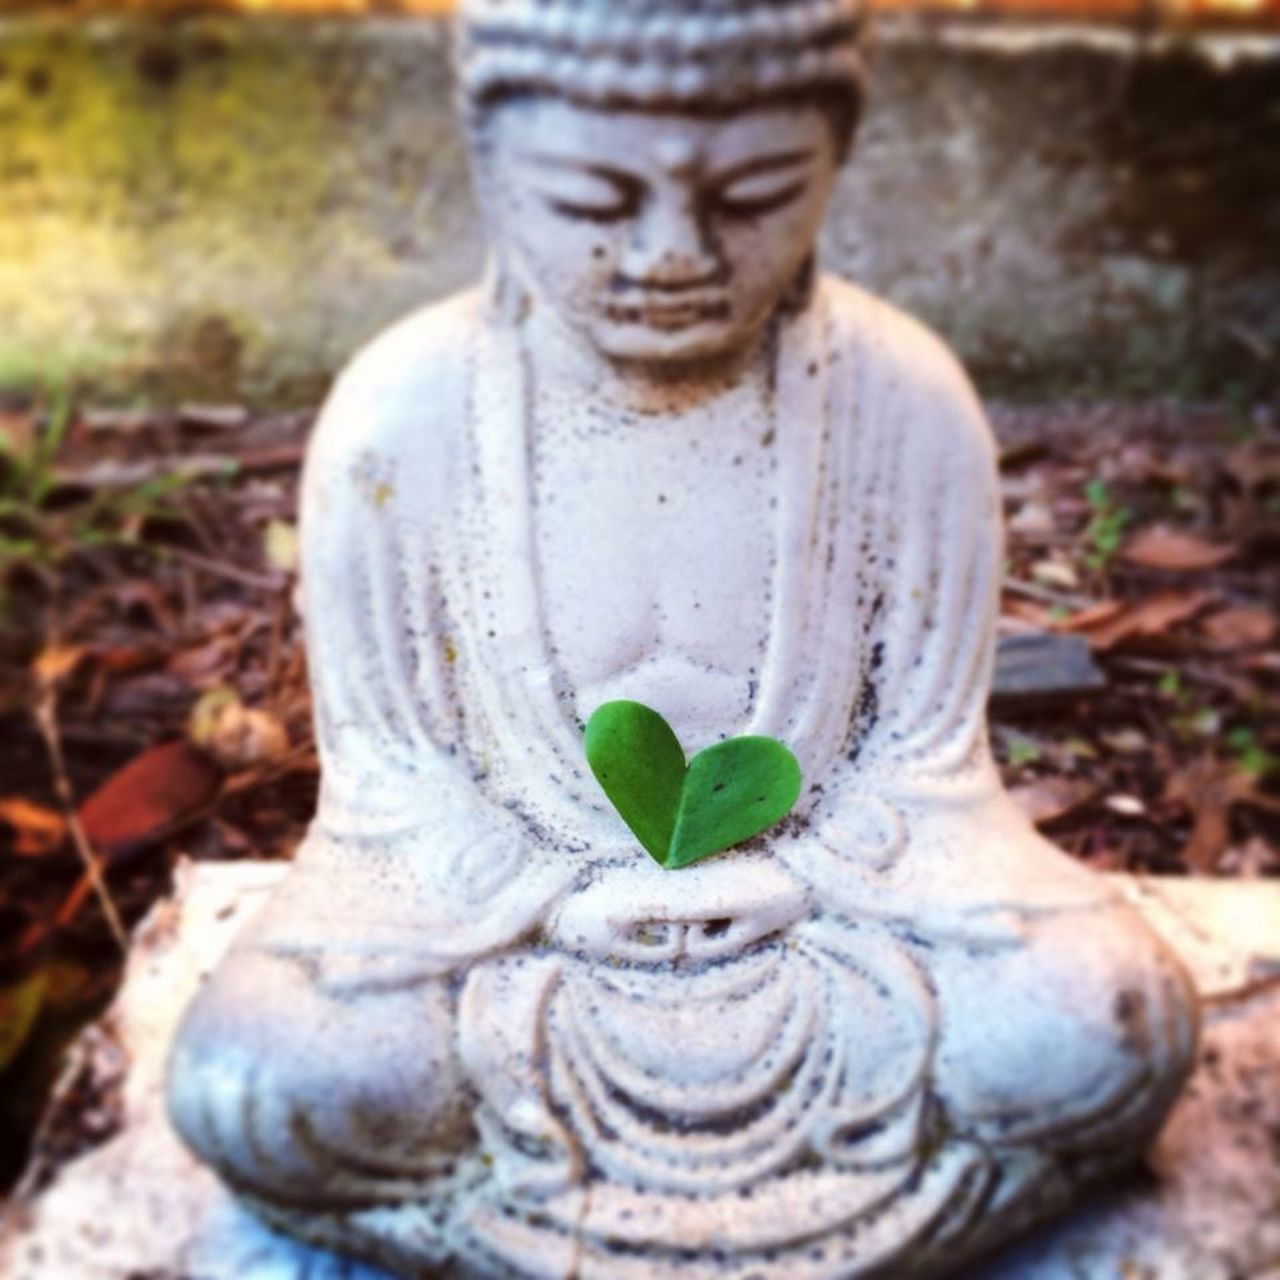 Buddha Zen Love Heart HeARTsy Hearts♡hearts Hearts HeartsINature Hearts In Nature Finding Love Find It In Everything Love Is All Around The Daily Heart